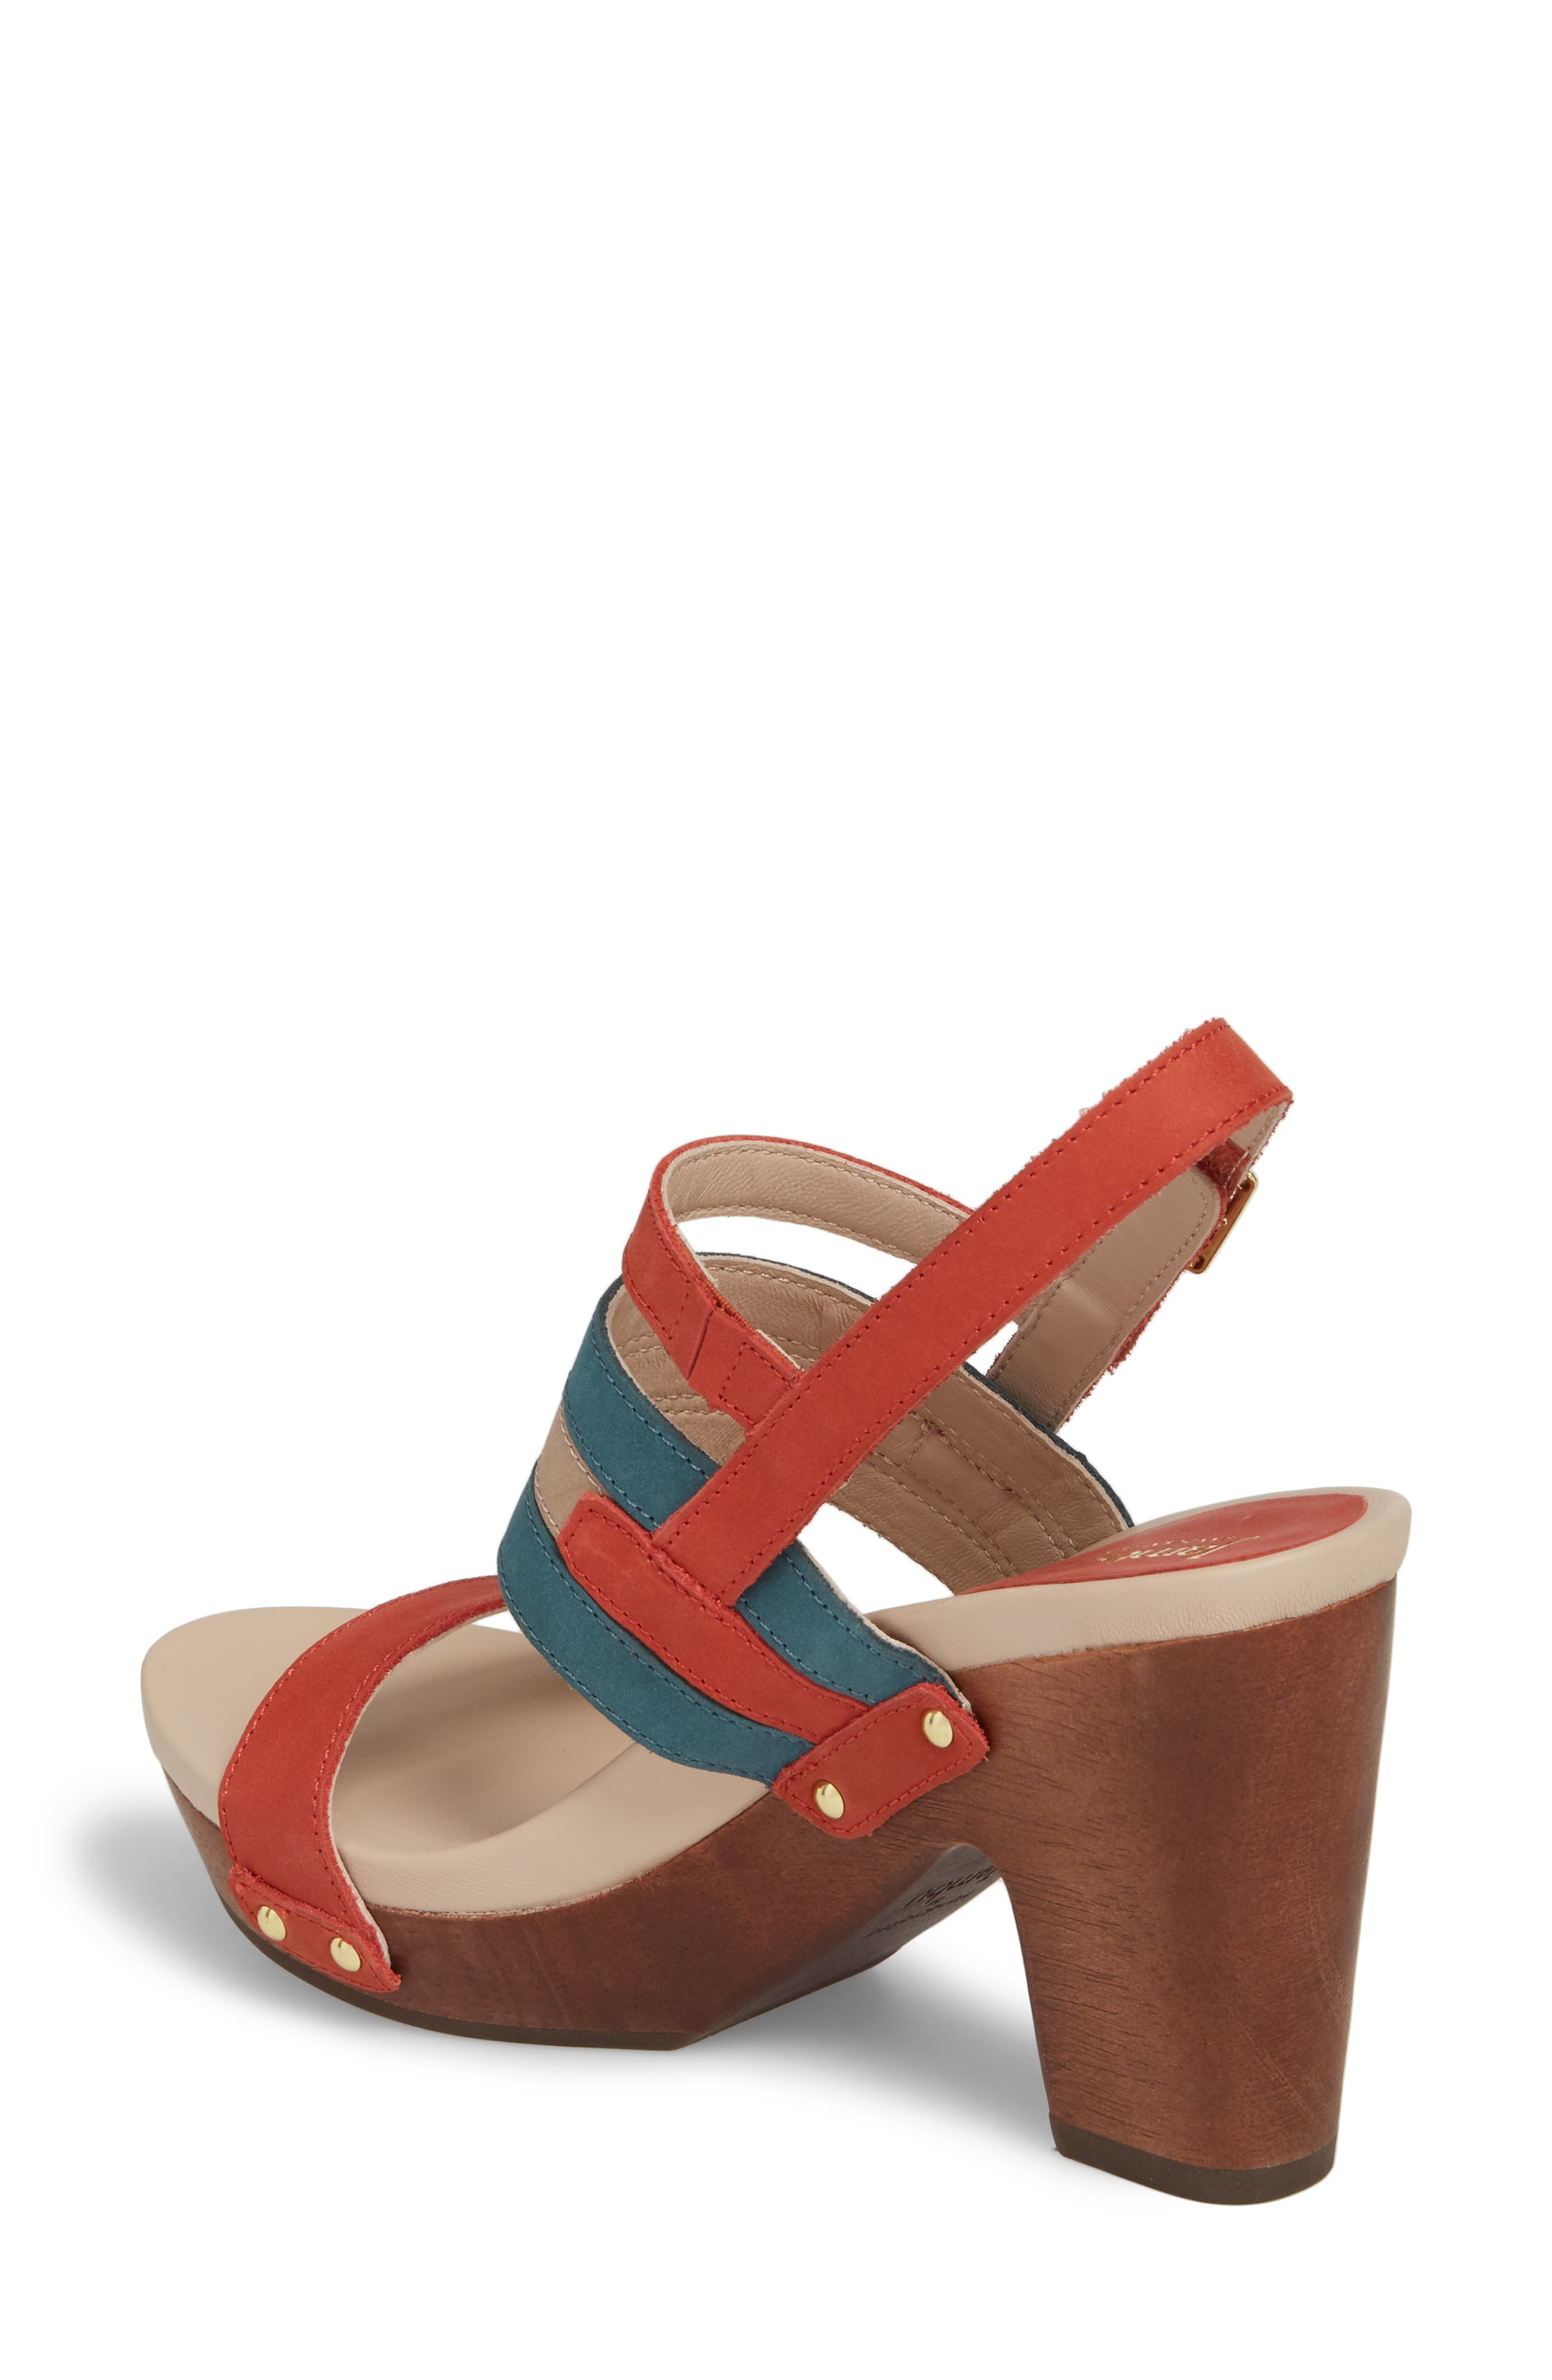 Viola Platform Sandal,                             Alternate thumbnail 2, color,                             Coral/ Teal Nubuck